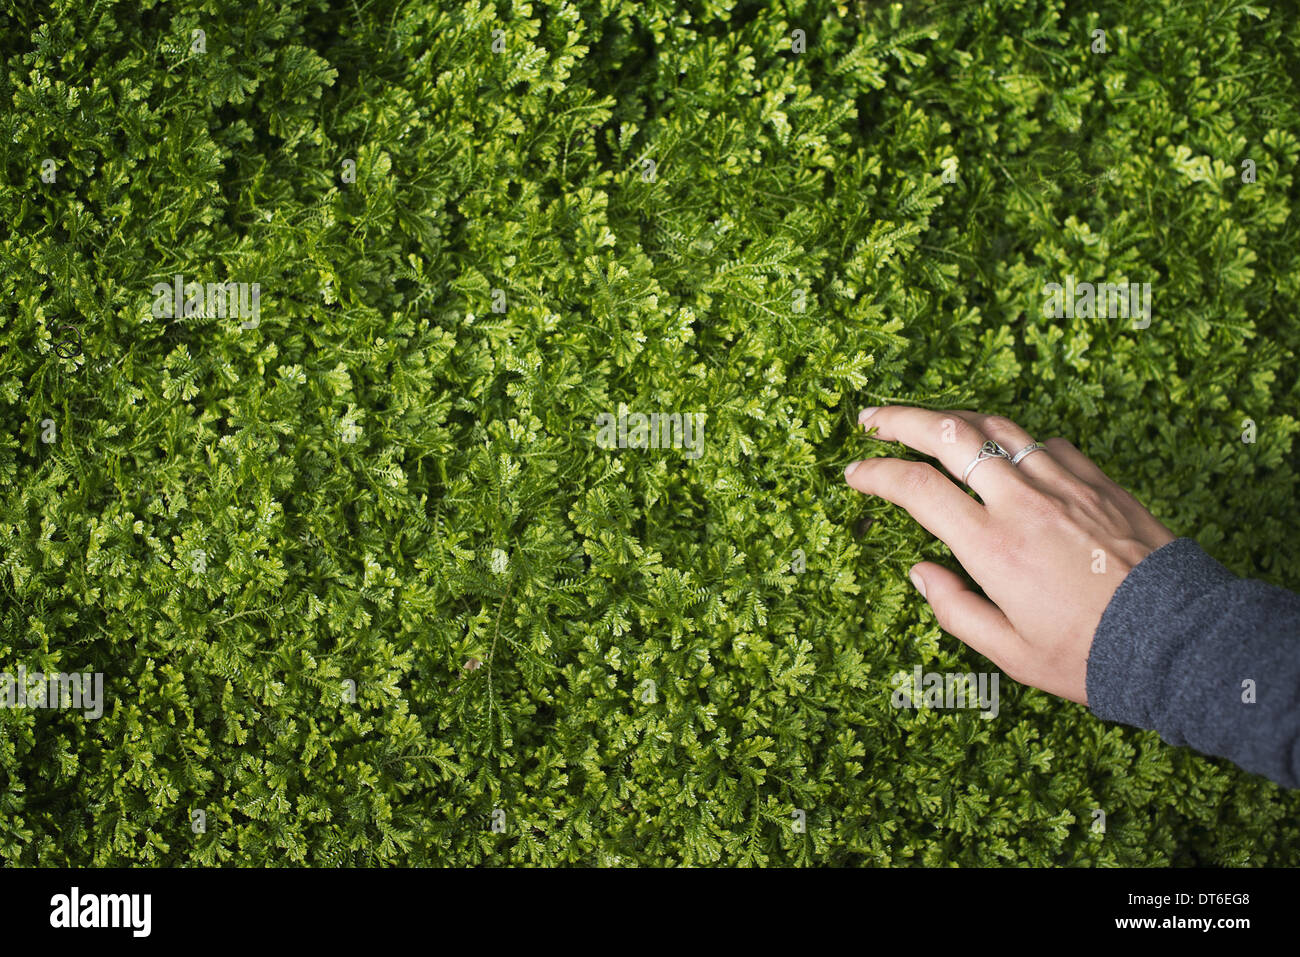 A woman's hand stroking the lush green foliage of a growing plant. Small delicate frilled edged leaves. Stock Photo